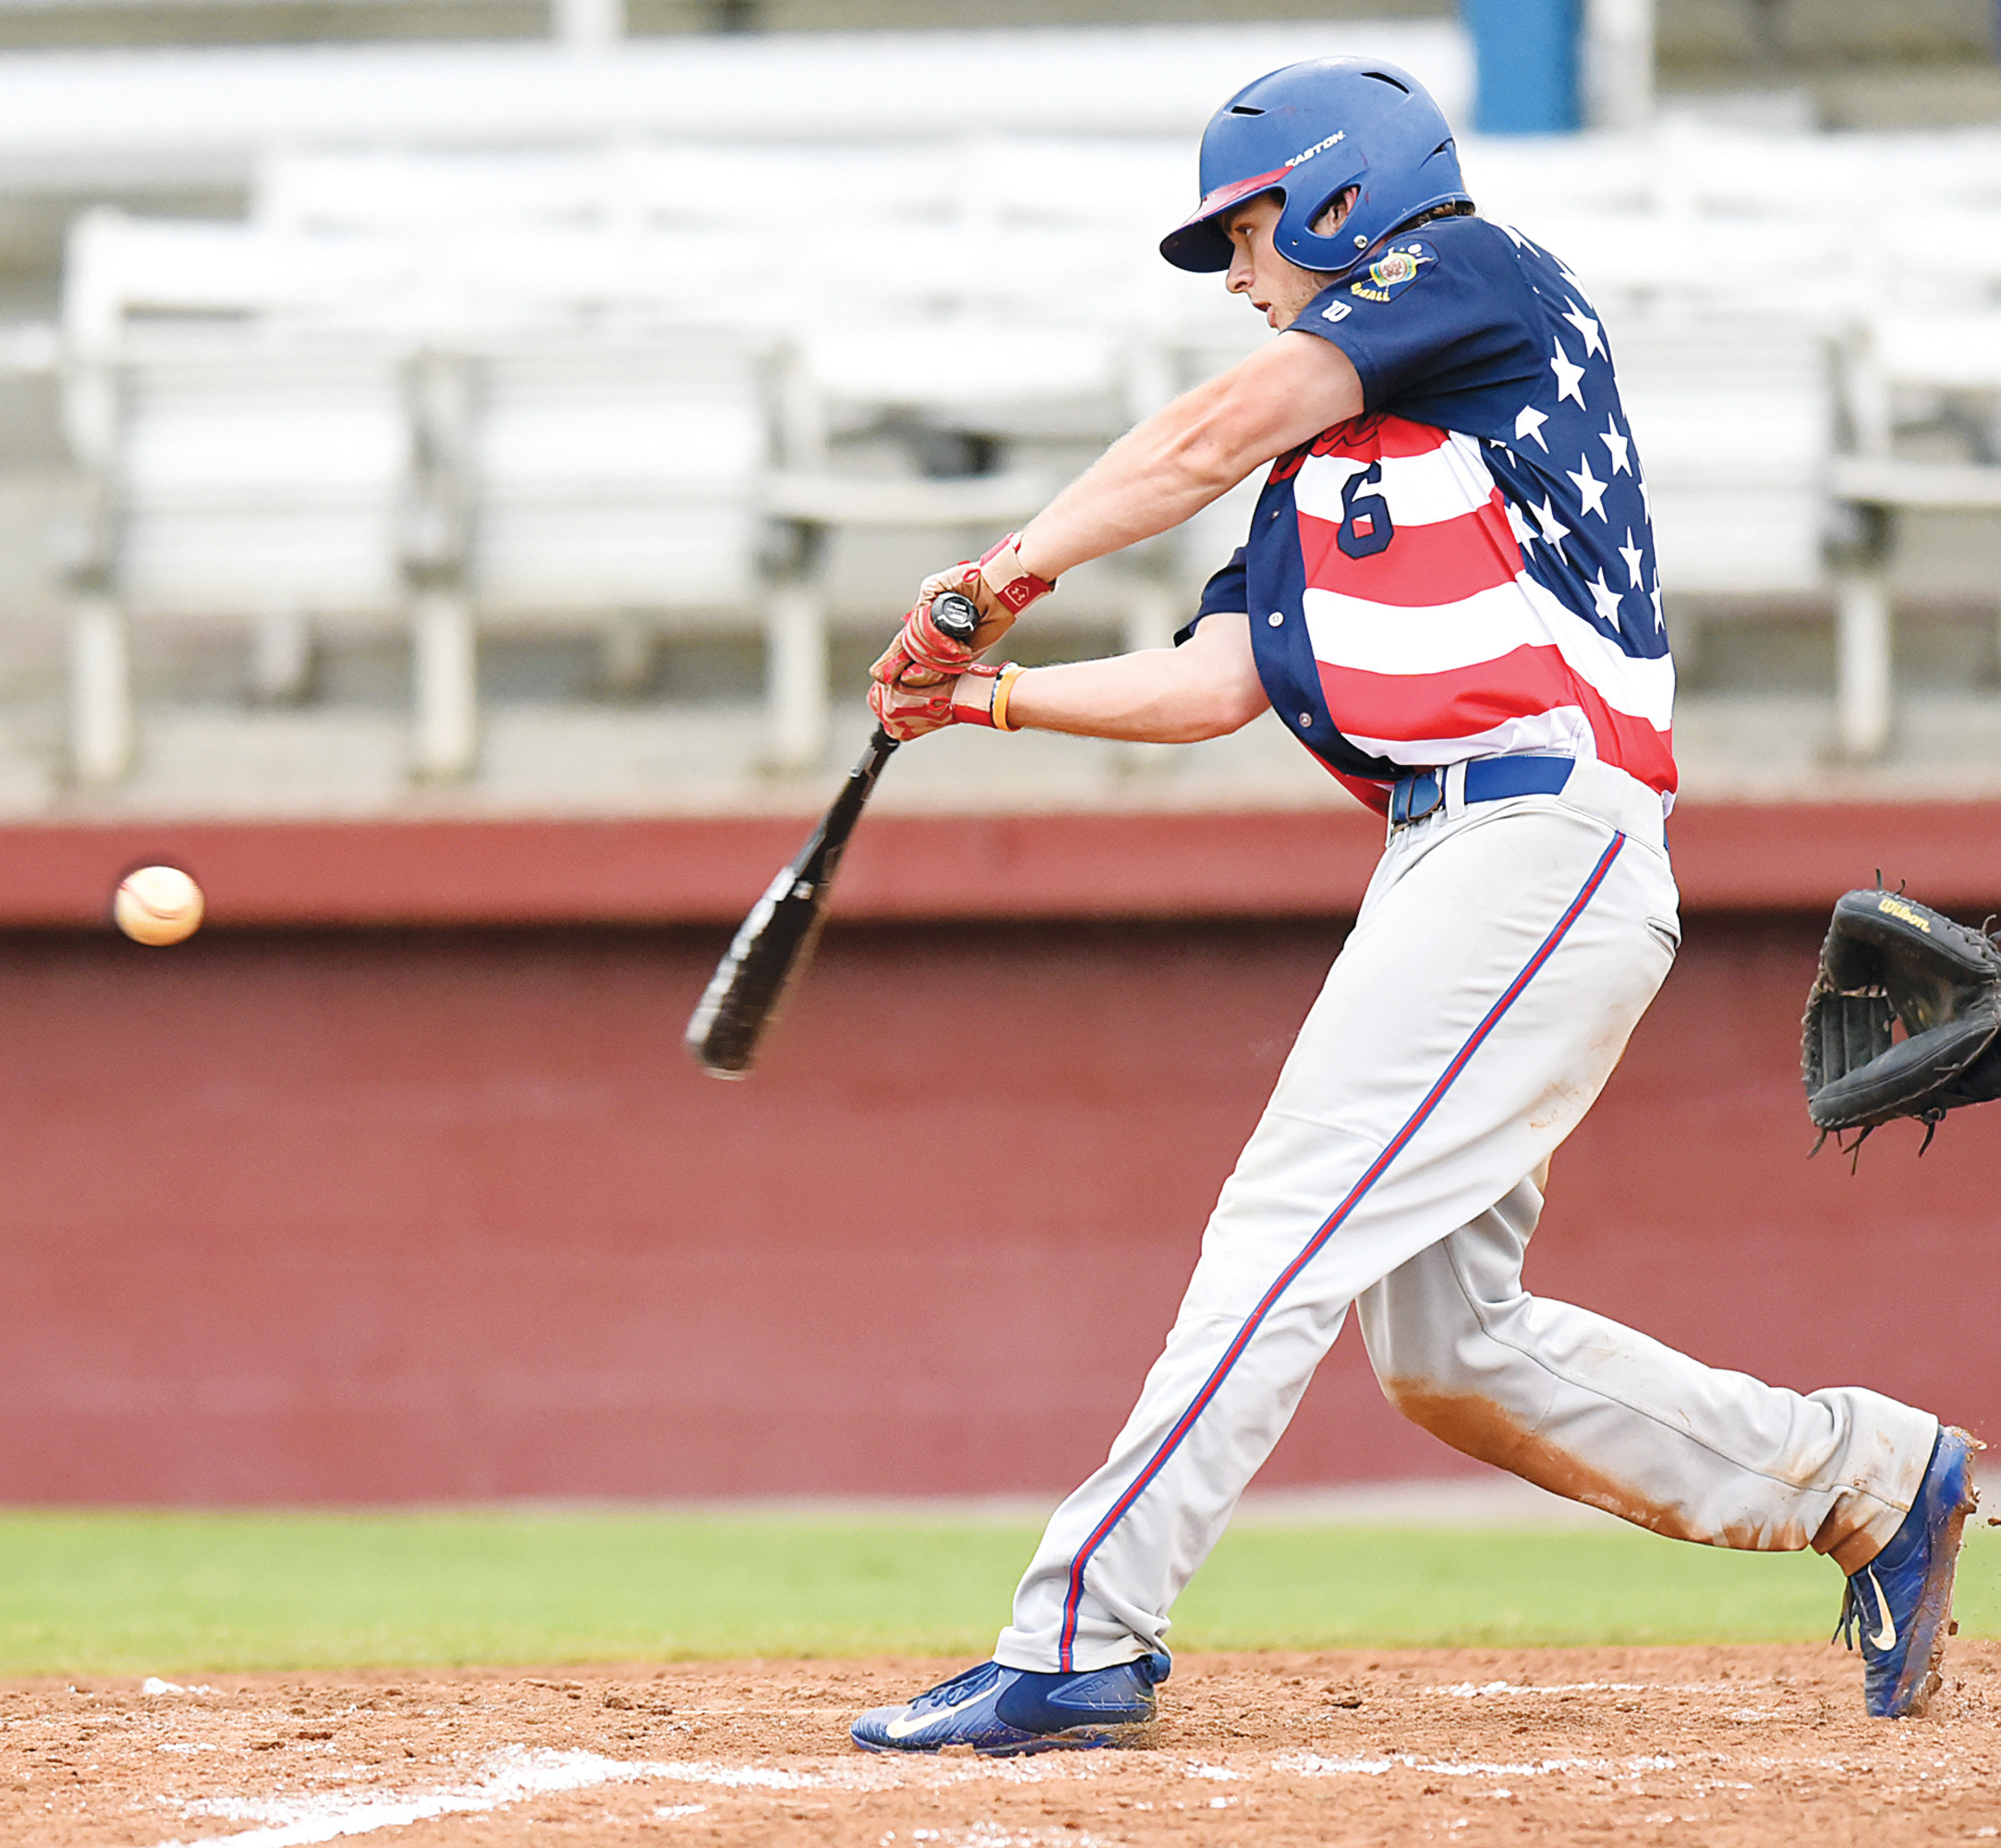 Right fielder Caleb Larrimore hits a live drive up the middle during the P-15's 15-1 victory over Beverly-Lowell, Ohio, in the Palmetto Invitational Tournament on Saturday at Riley Park.